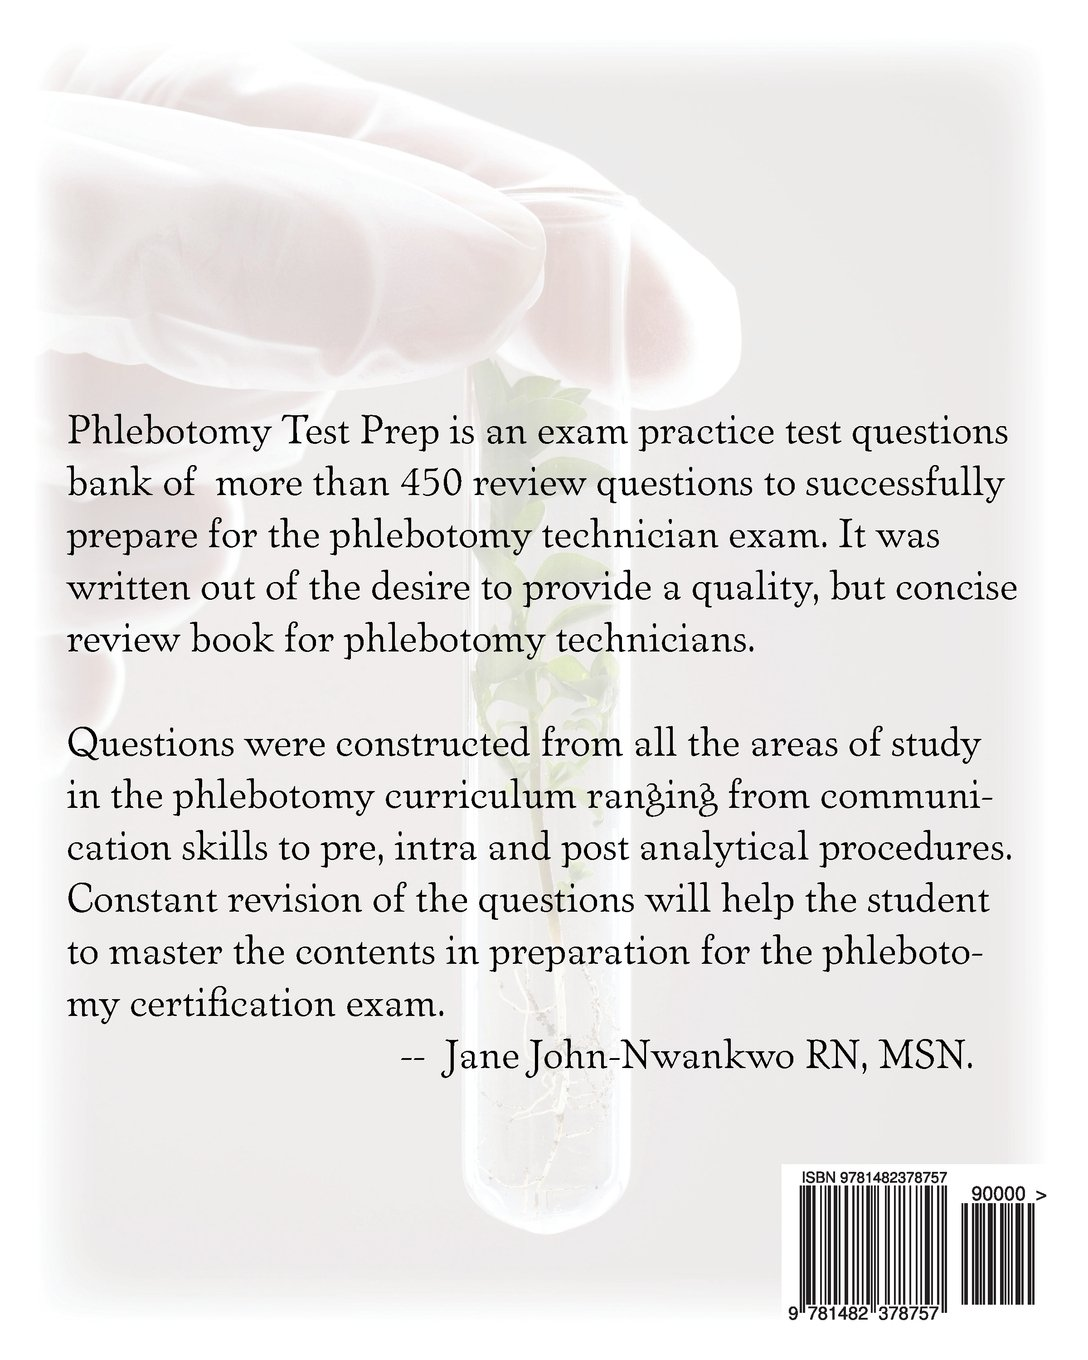 Phlebotomy test prep exam review practice questions amazon phlebotomy test prep exam review practice questions amazon jane john nwankwo rn msn 9781482378757 books xflitez Image collections